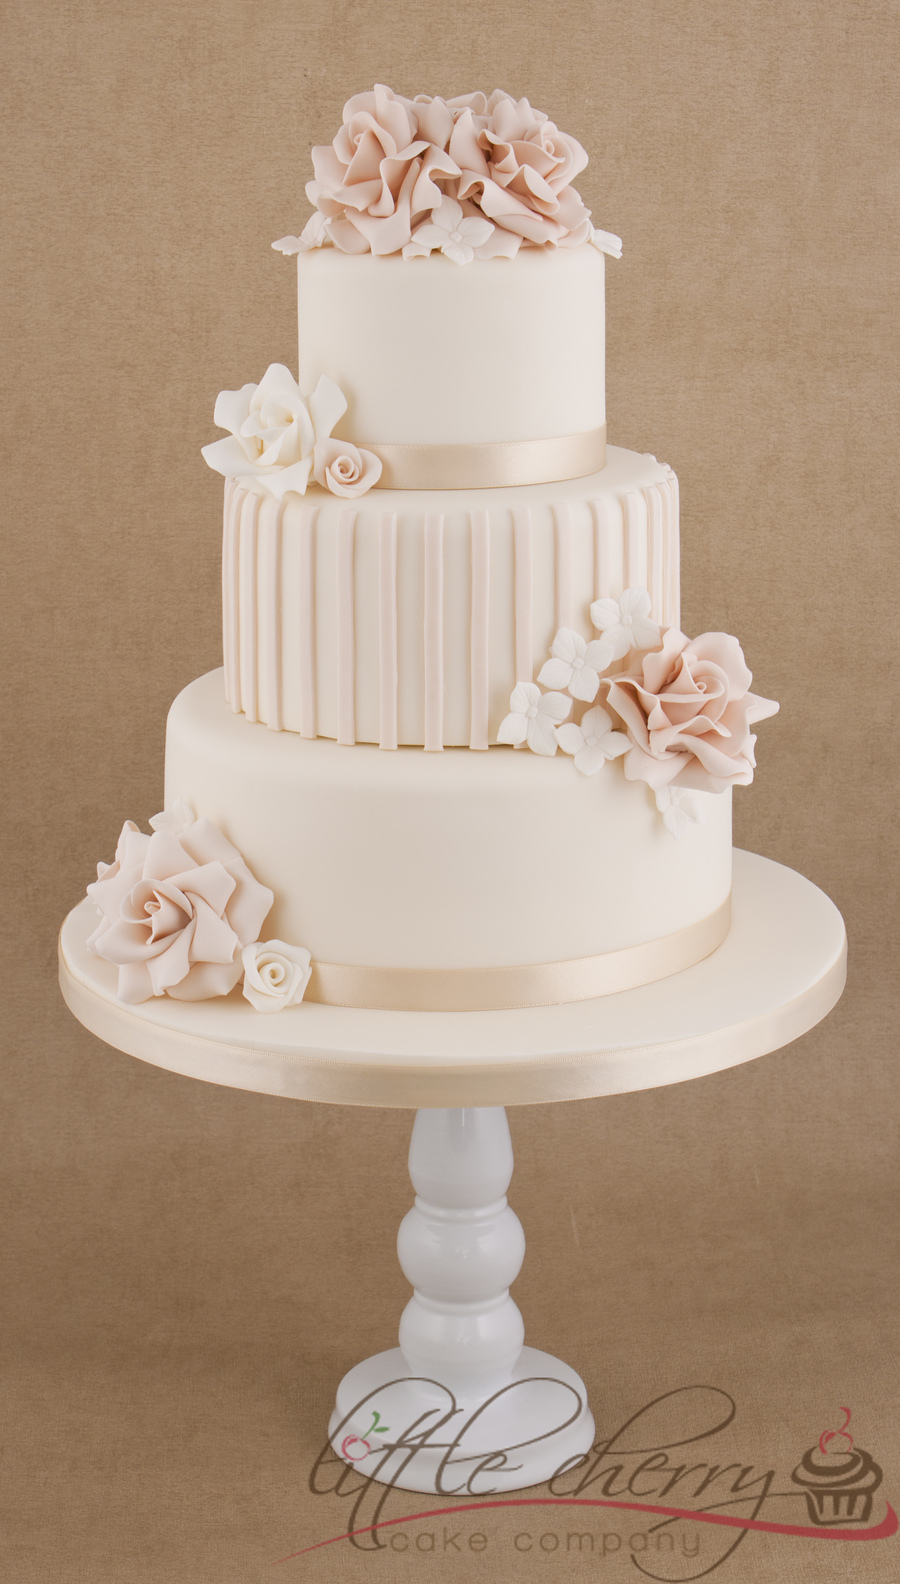 Roses And Stripes 3 Tier Wedding Cake on Cake Central